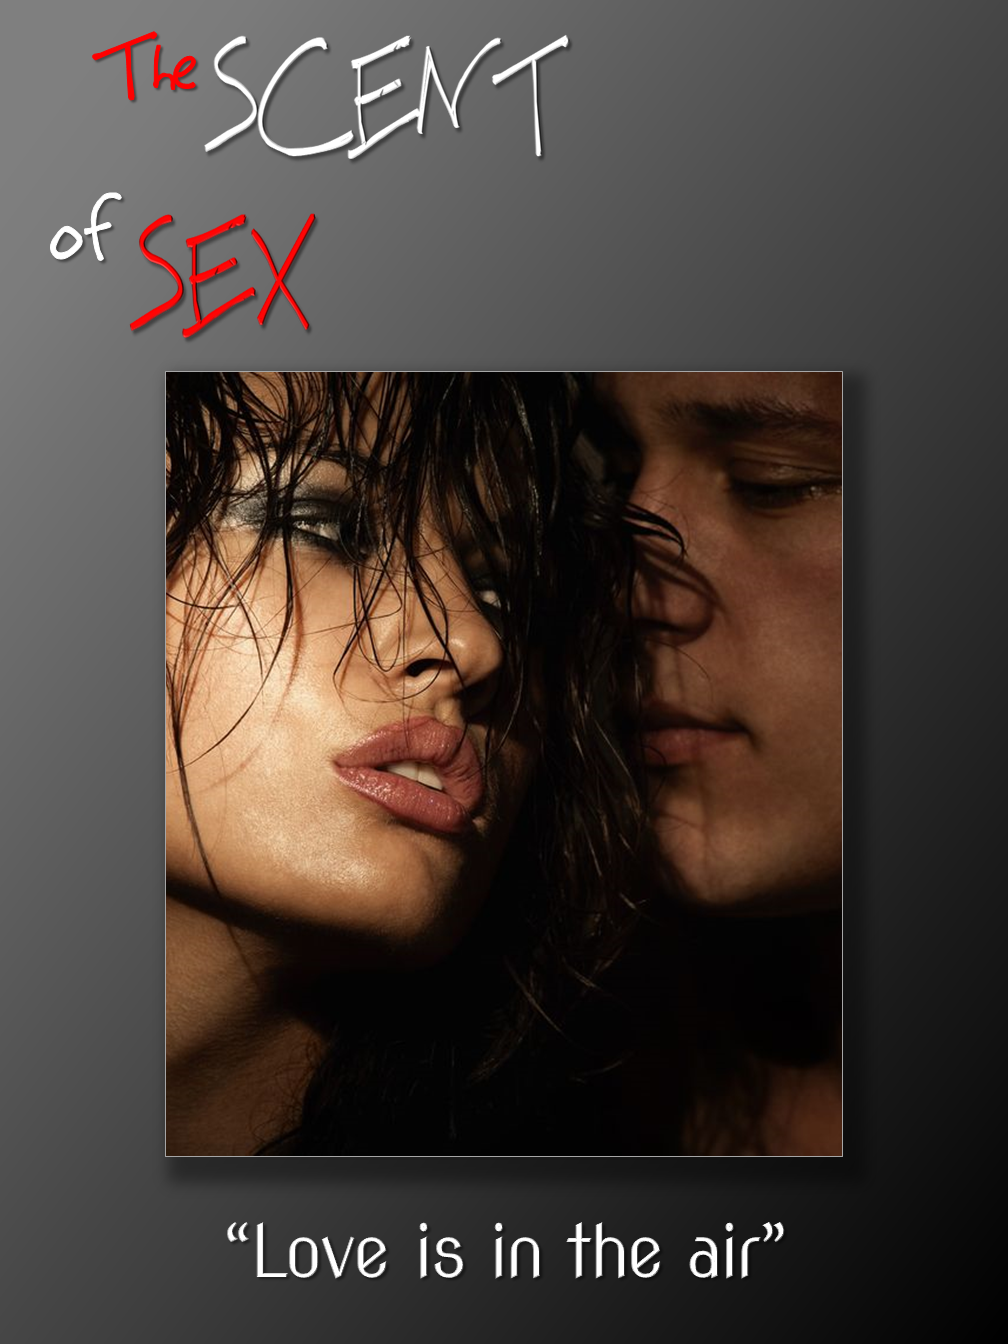 The Scent of Sex